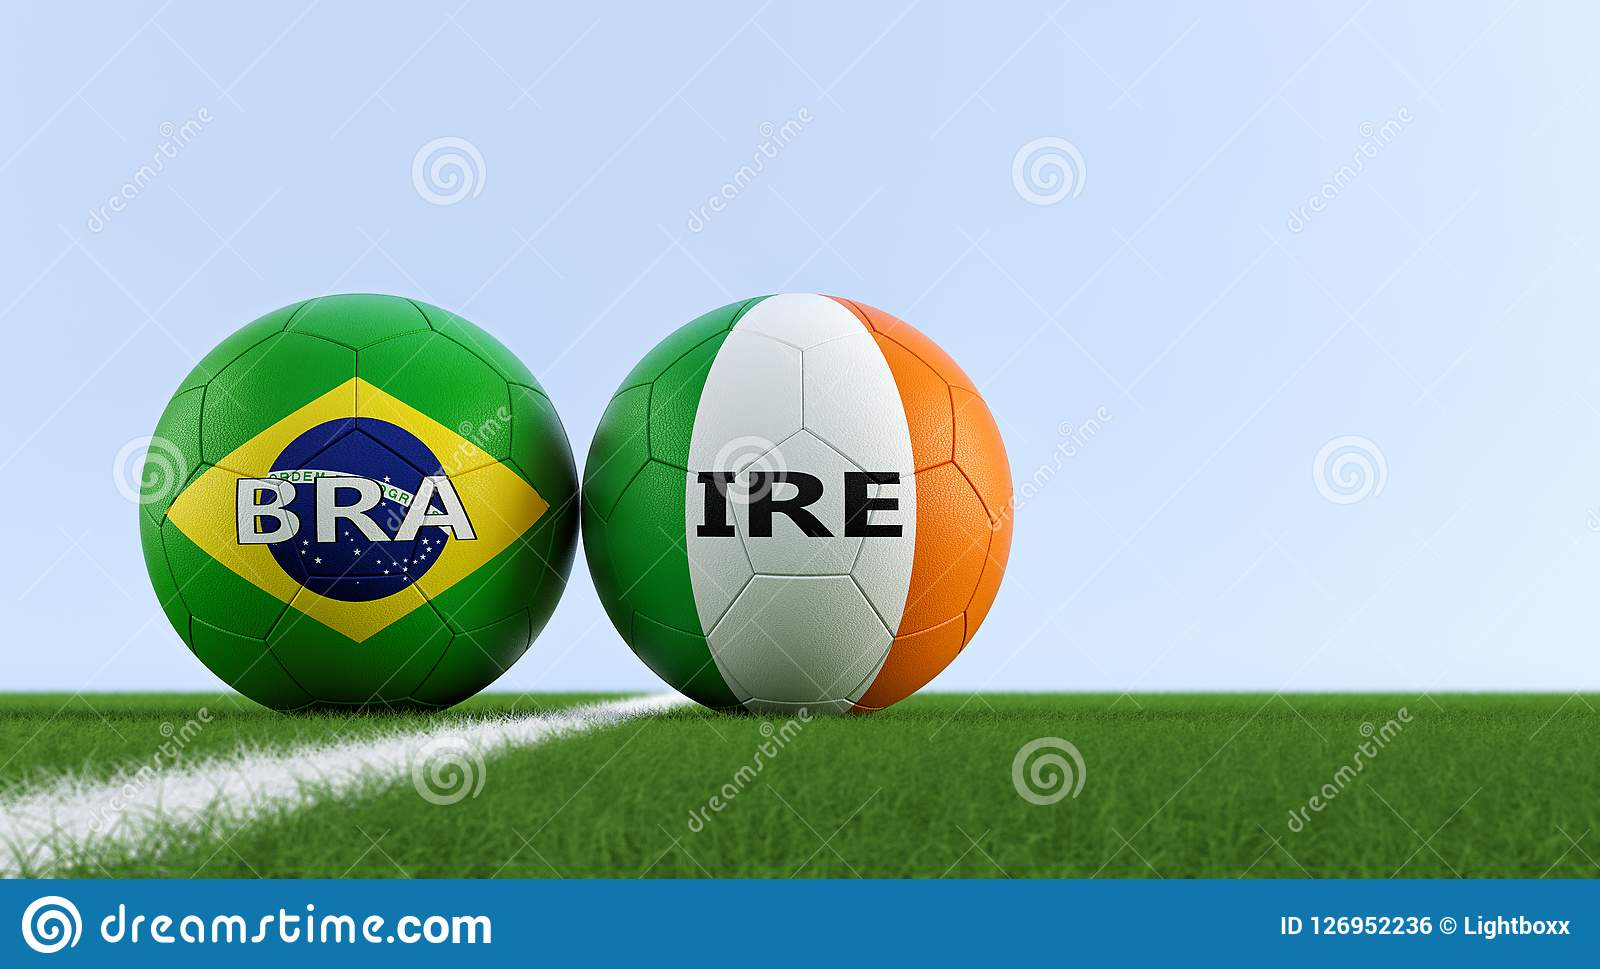 33868f86a Brazil Soccer Match - Soccer balls in Ireland and Brazil national colors on